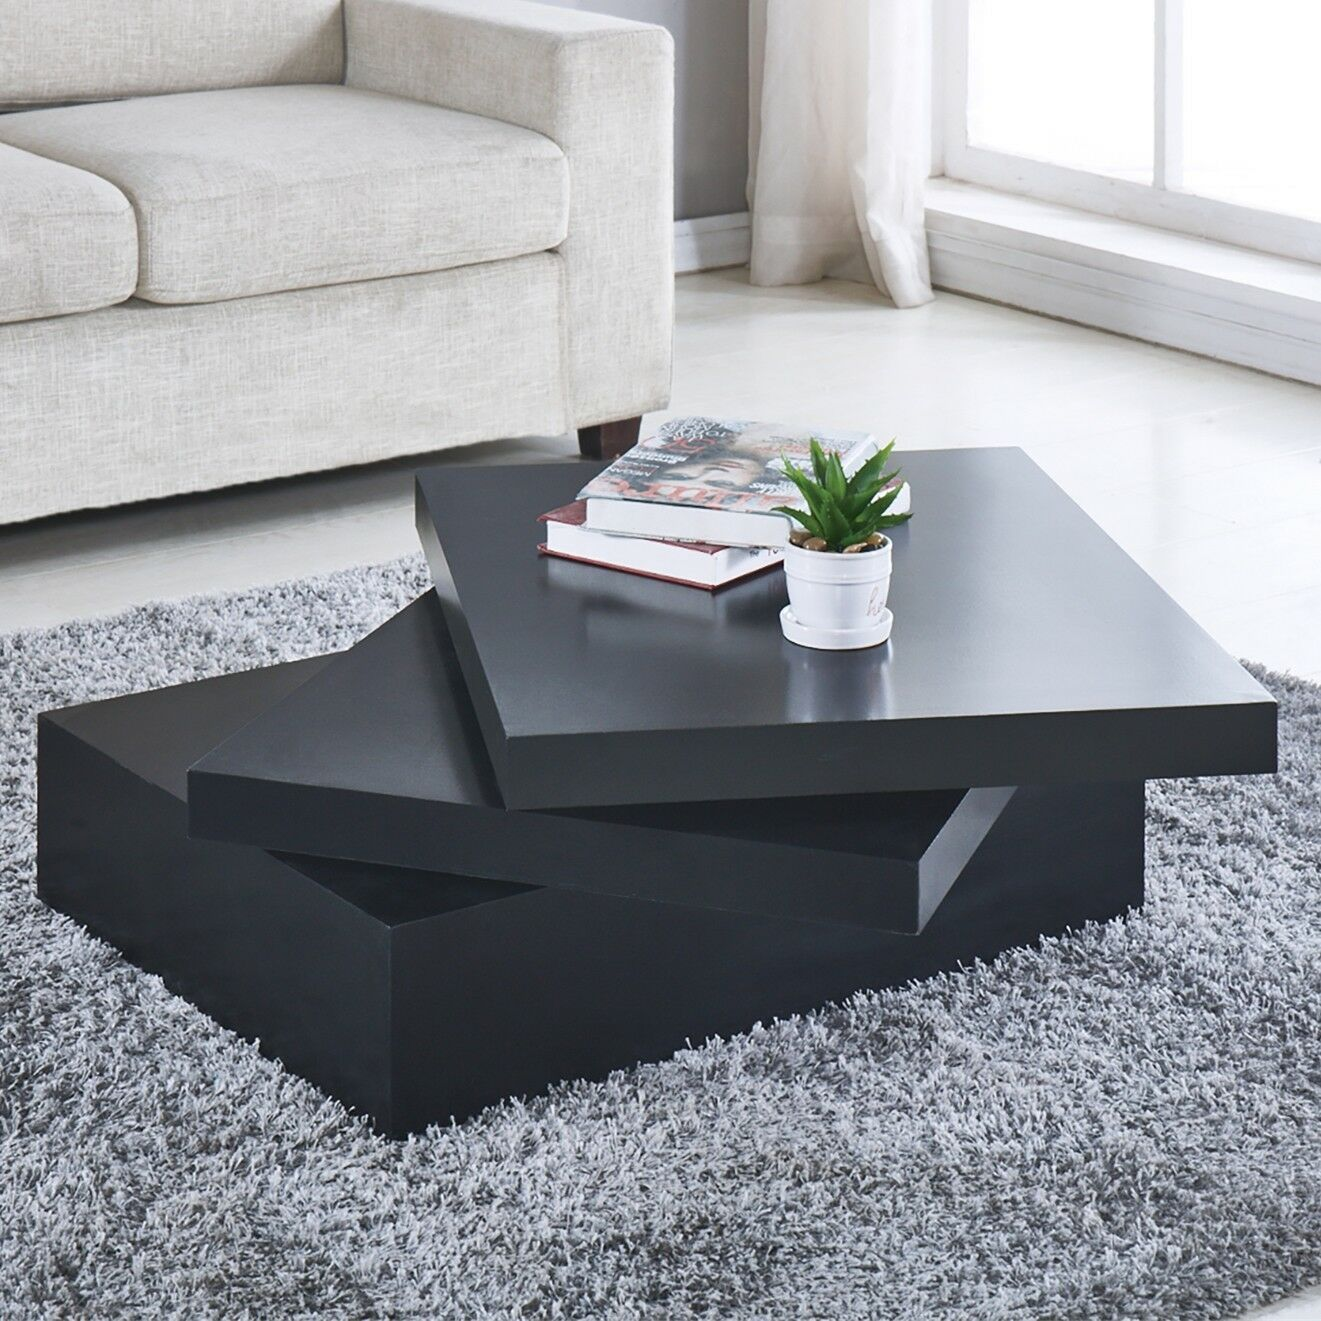 Black Square Coffee Table Rotating Contemporary Modern Living Room Furniture New Ww Contemporary Living Room Furniture Coffee Table Black Square Coffee Table [ 1321 x 1321 Pixel ]